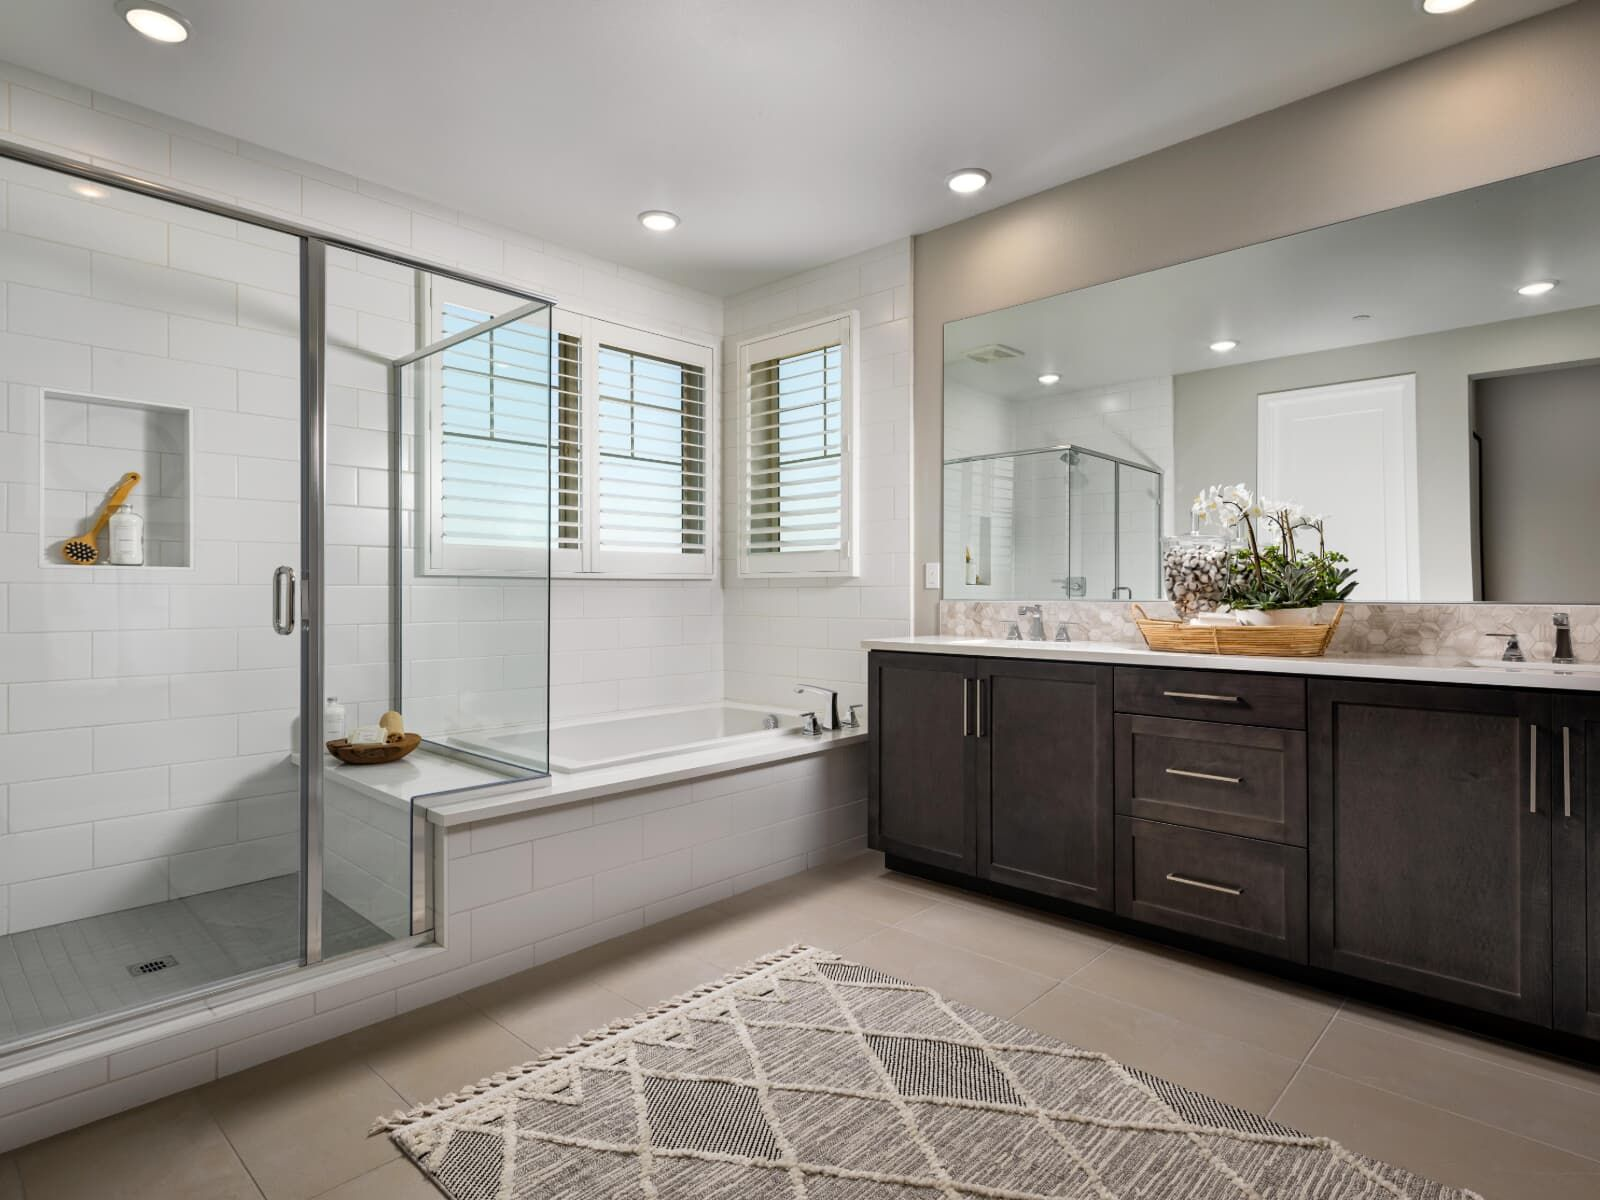 Bathroom featured in the Plan 2 By Brookfield Residential in Los Angeles, CA